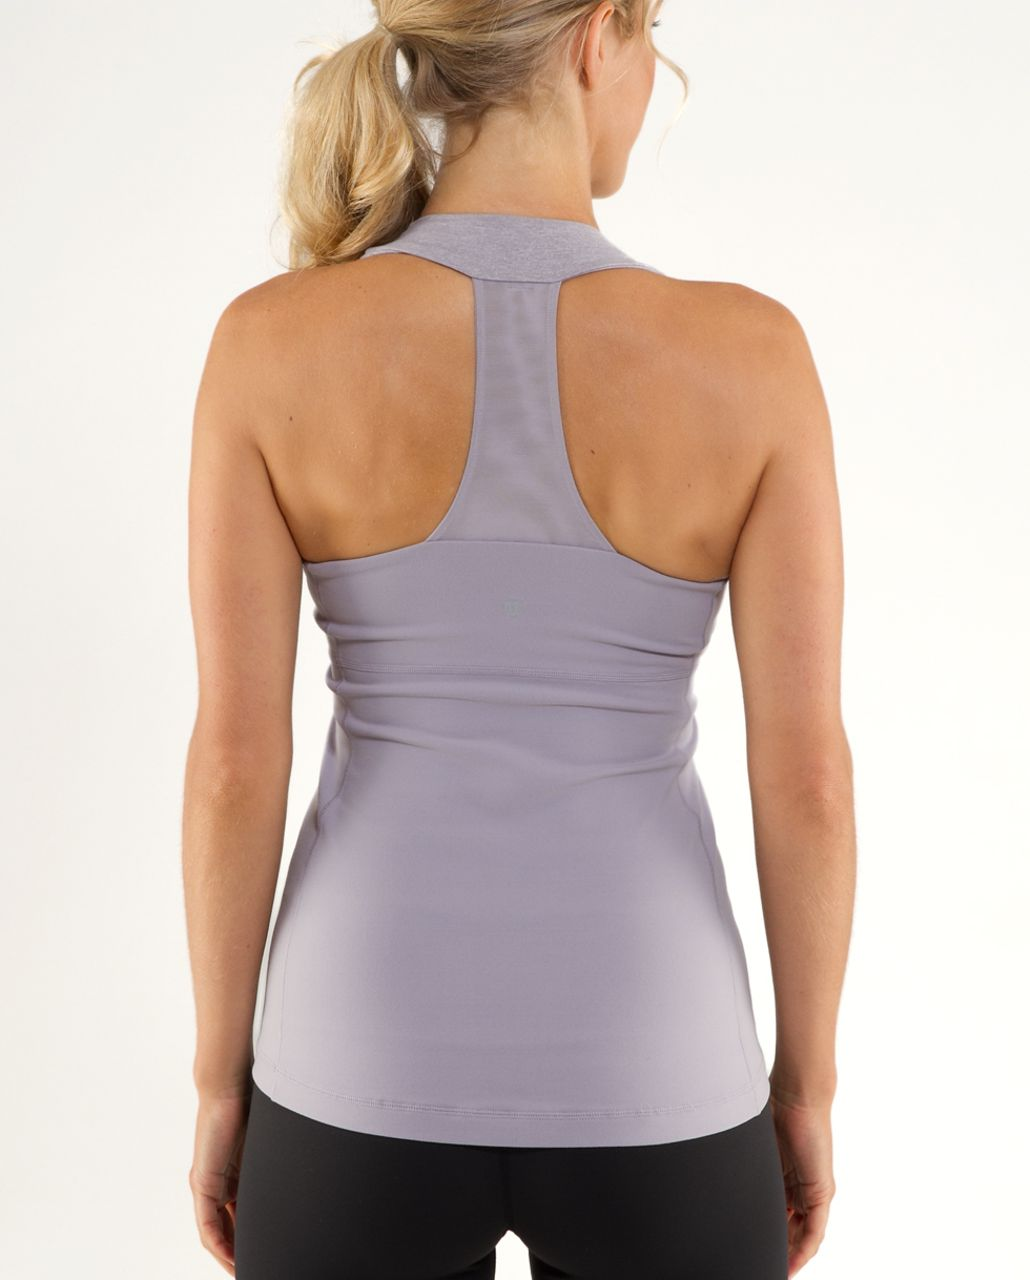 Lululemon Scoop Neck Tank - Lavender Grey /  Heathered Lavender Grey